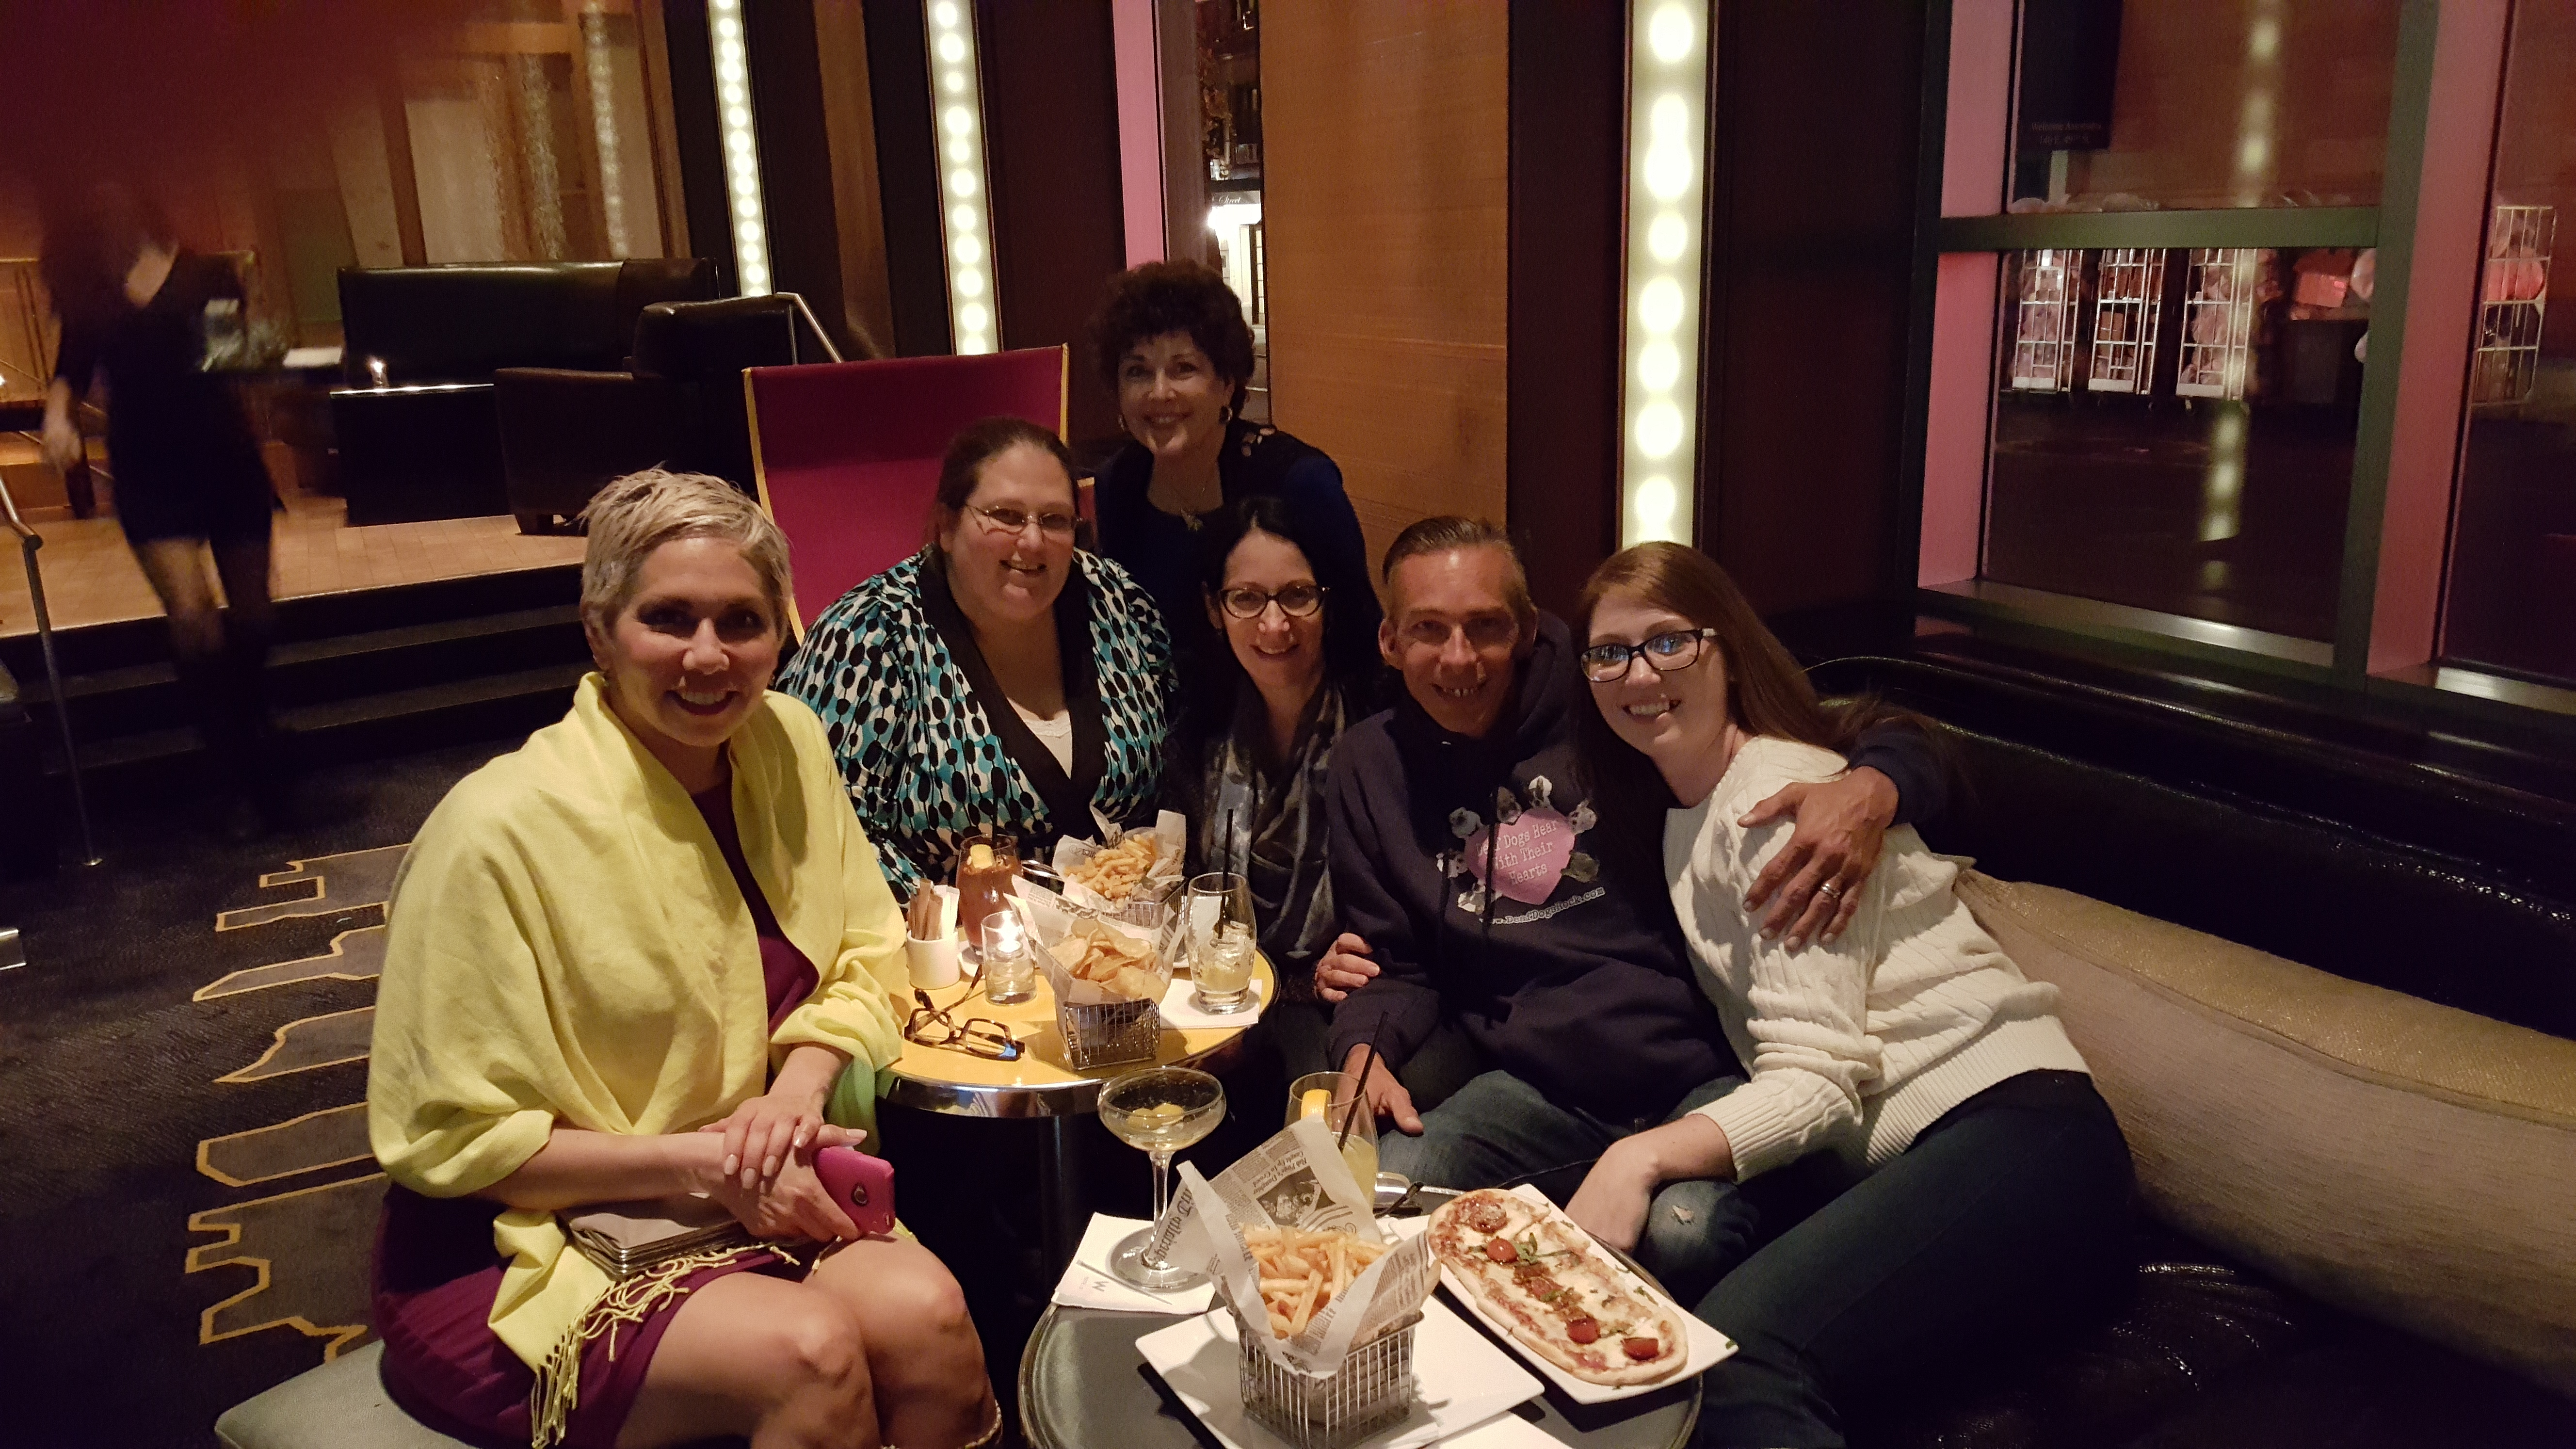 Me and my blogging friends at The W Hotel in NYC!